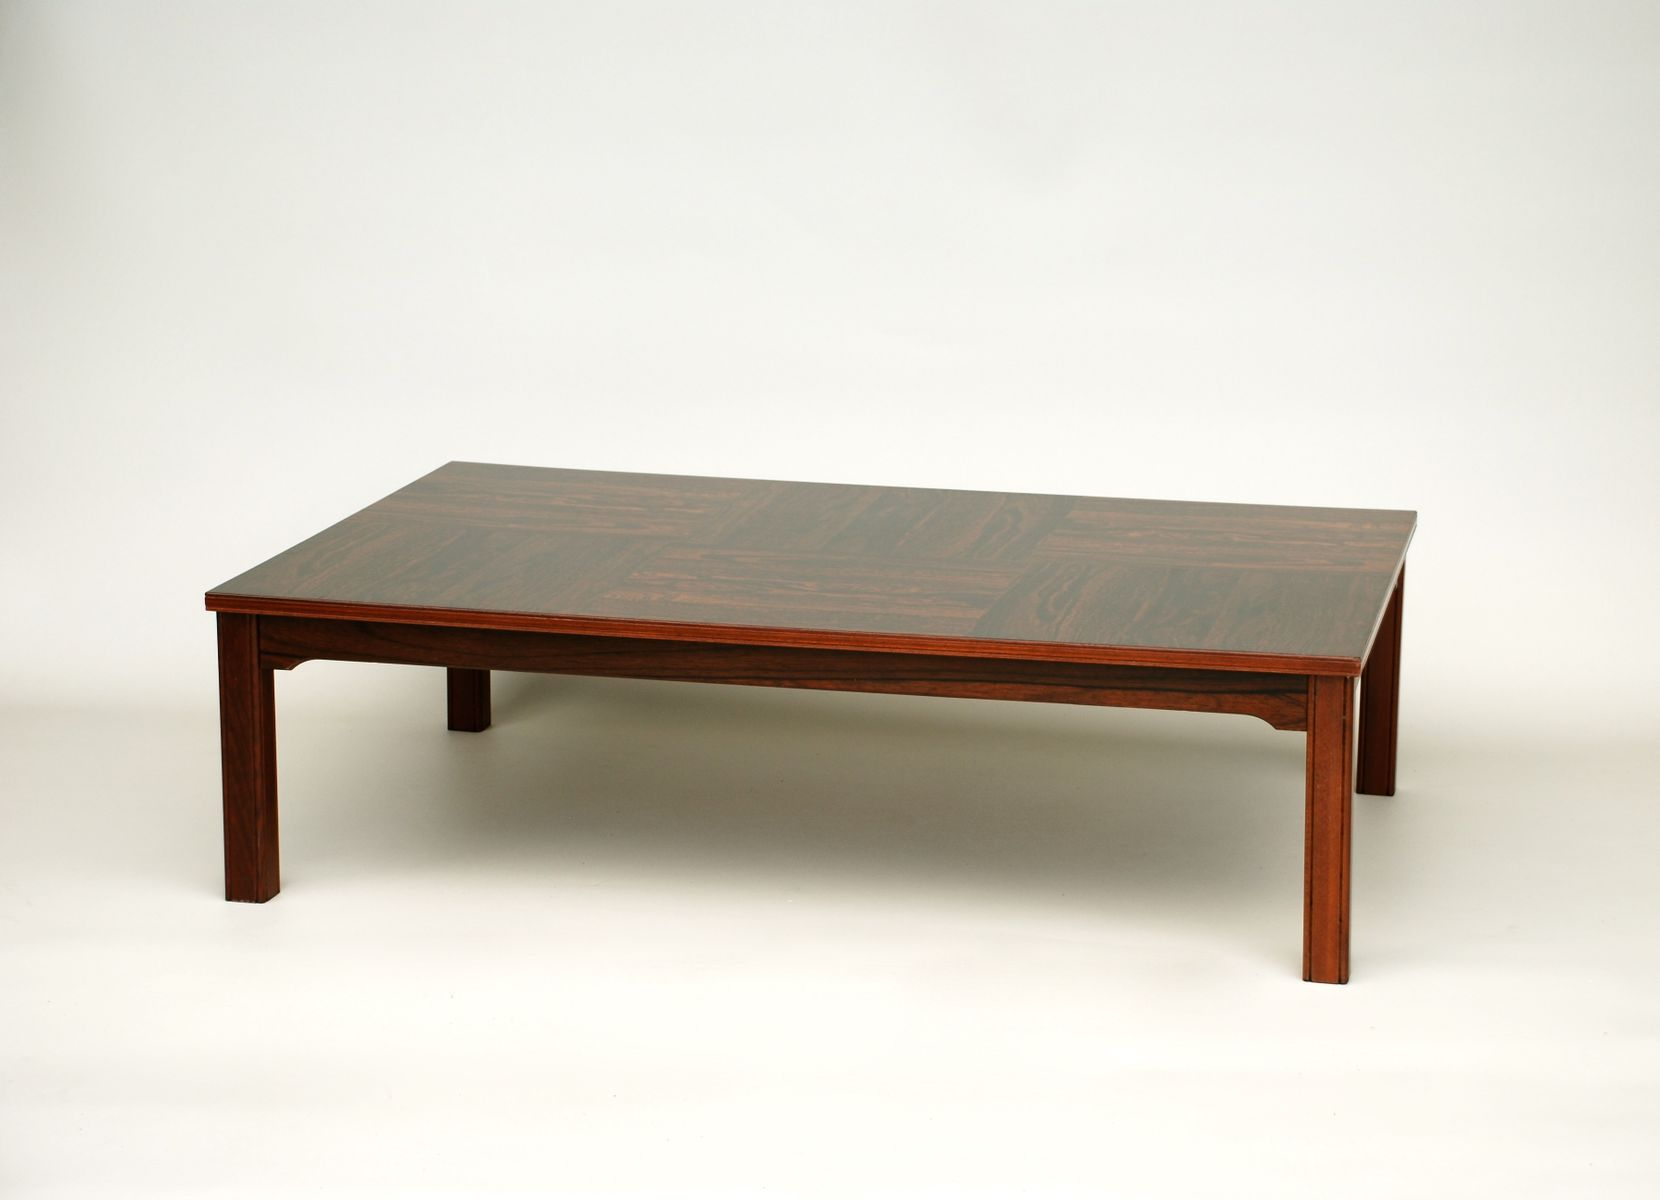 Scandinavian Coffee Table From Ulferts 1980s For Sale At Pamono